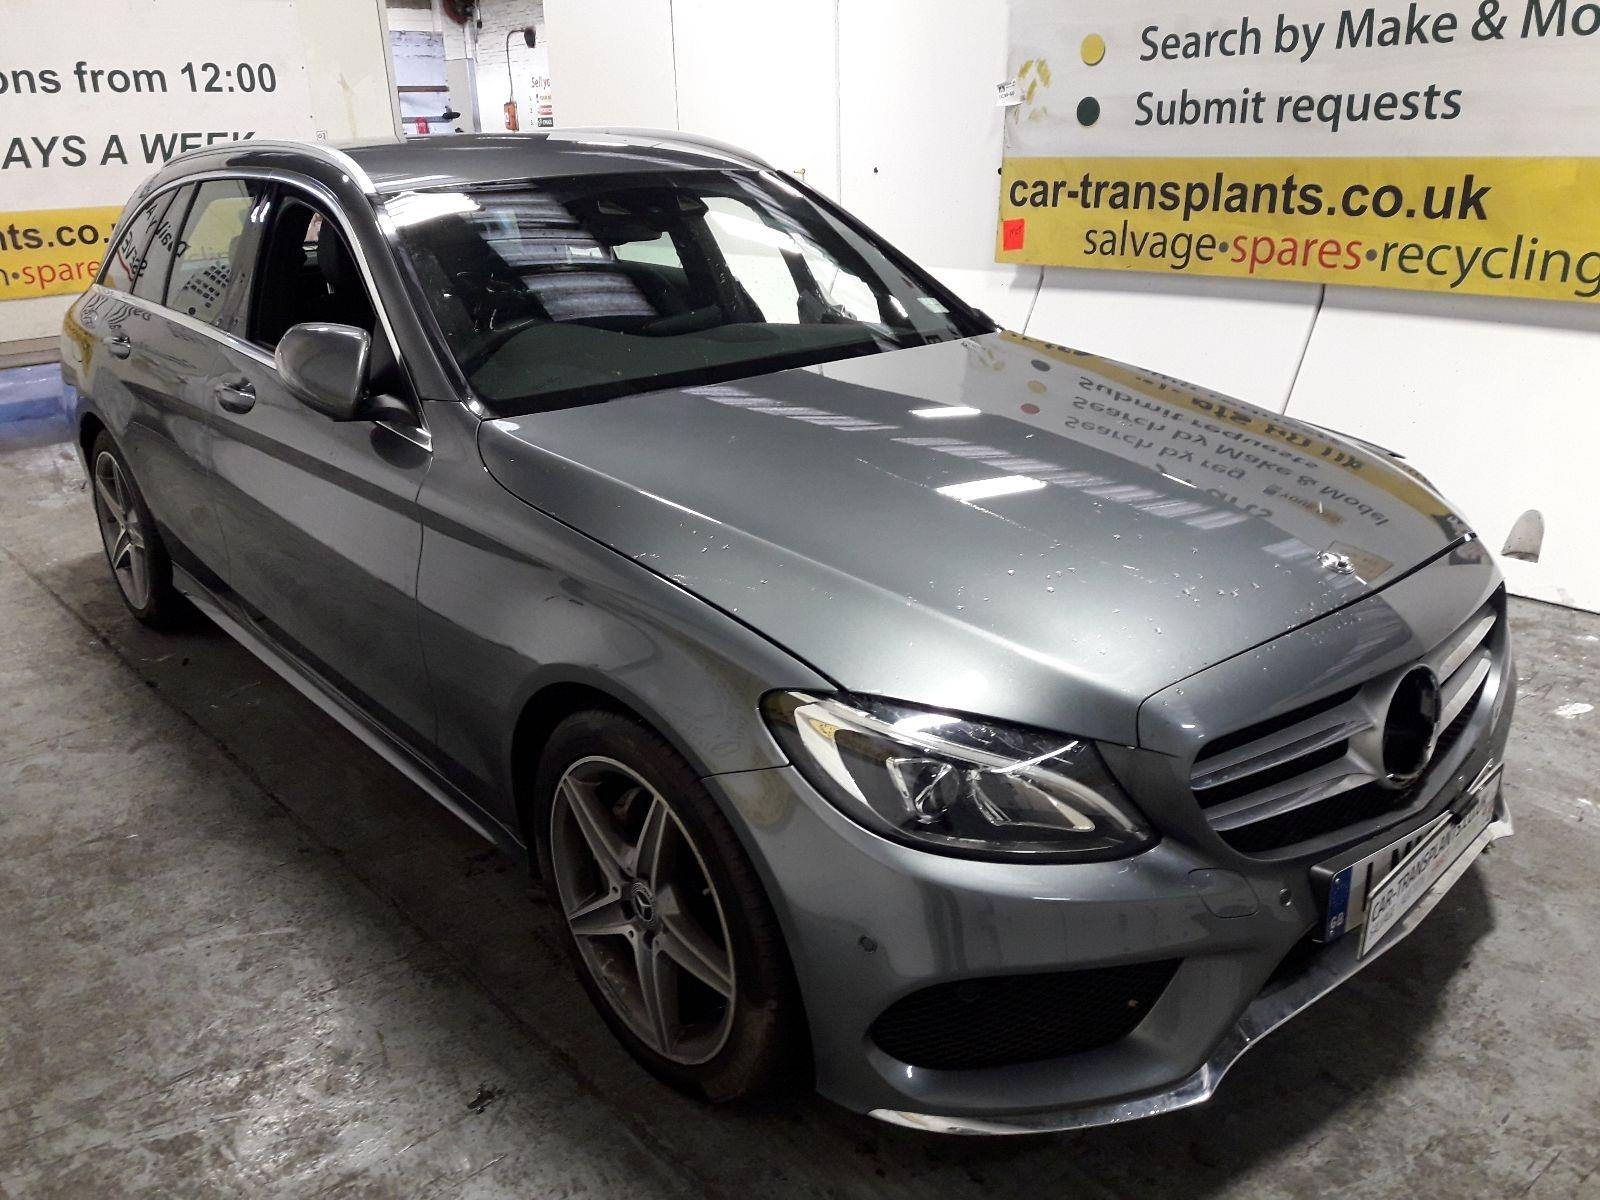 C220 Amg 2017 Mercedes Benz Spare Parts Uk Amatmotor Co